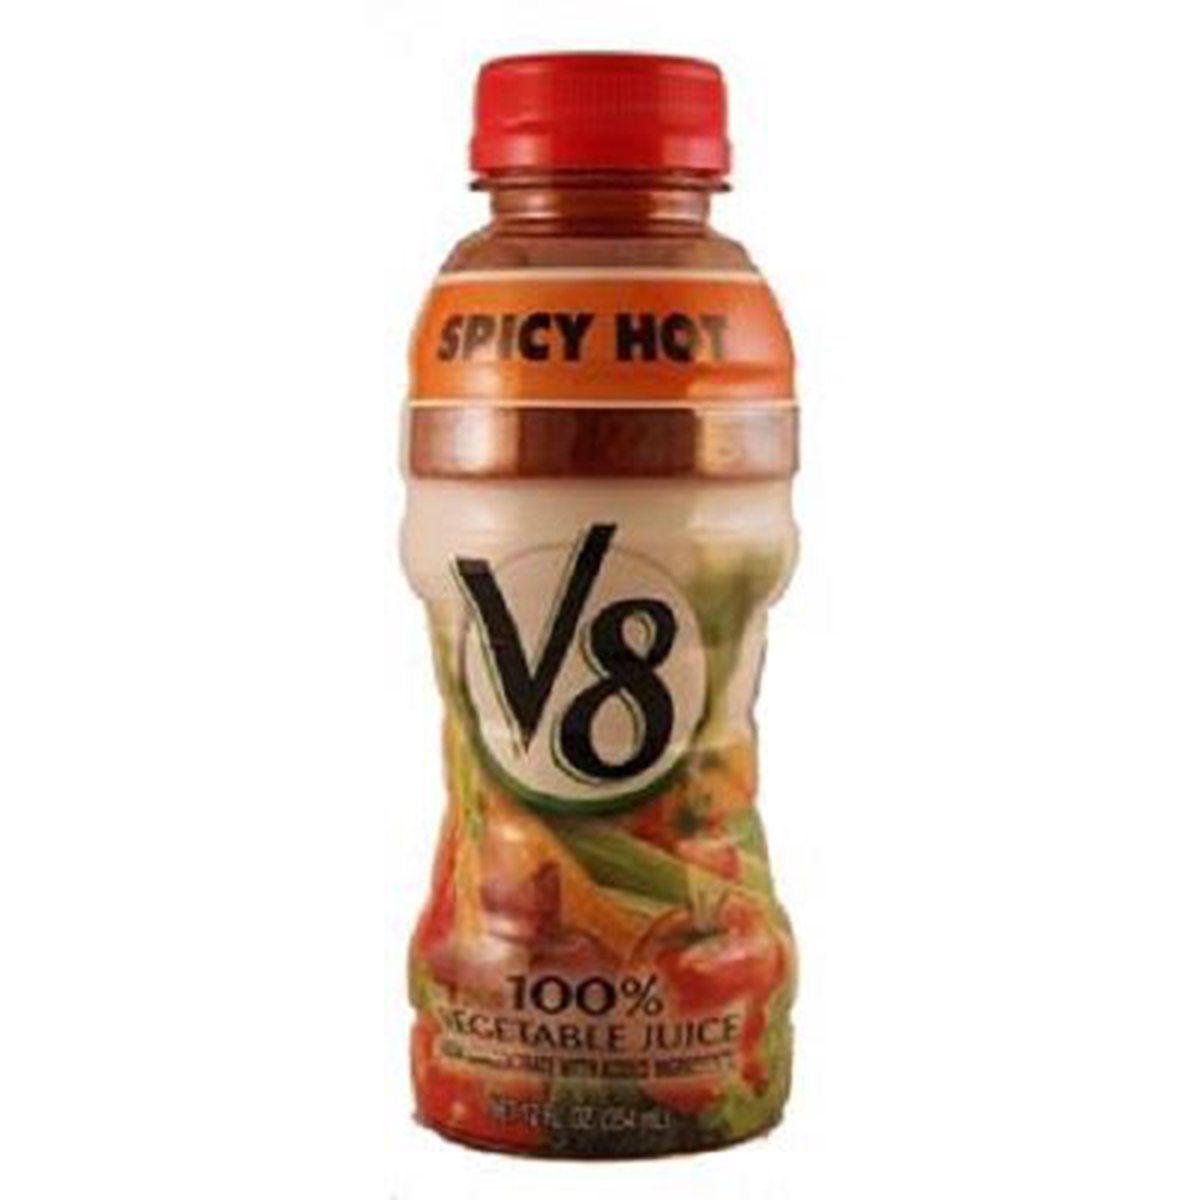 V8 Spicy Hot 100% Vegetable Juice, 12 oz